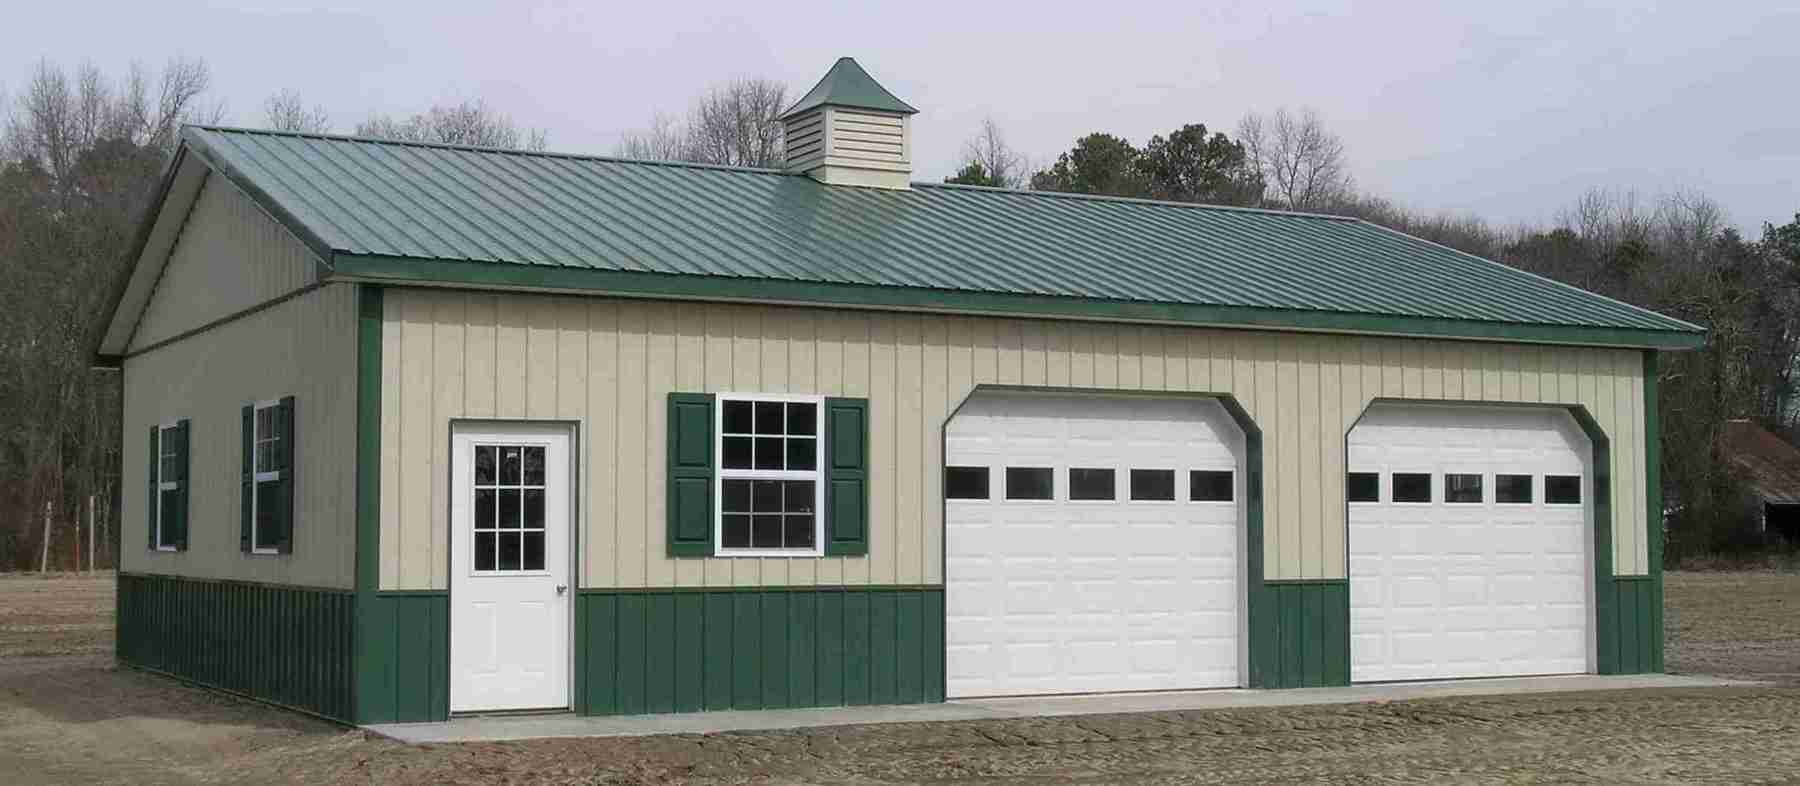 pole building garage ideas - Pole Barn Garage Kits 101